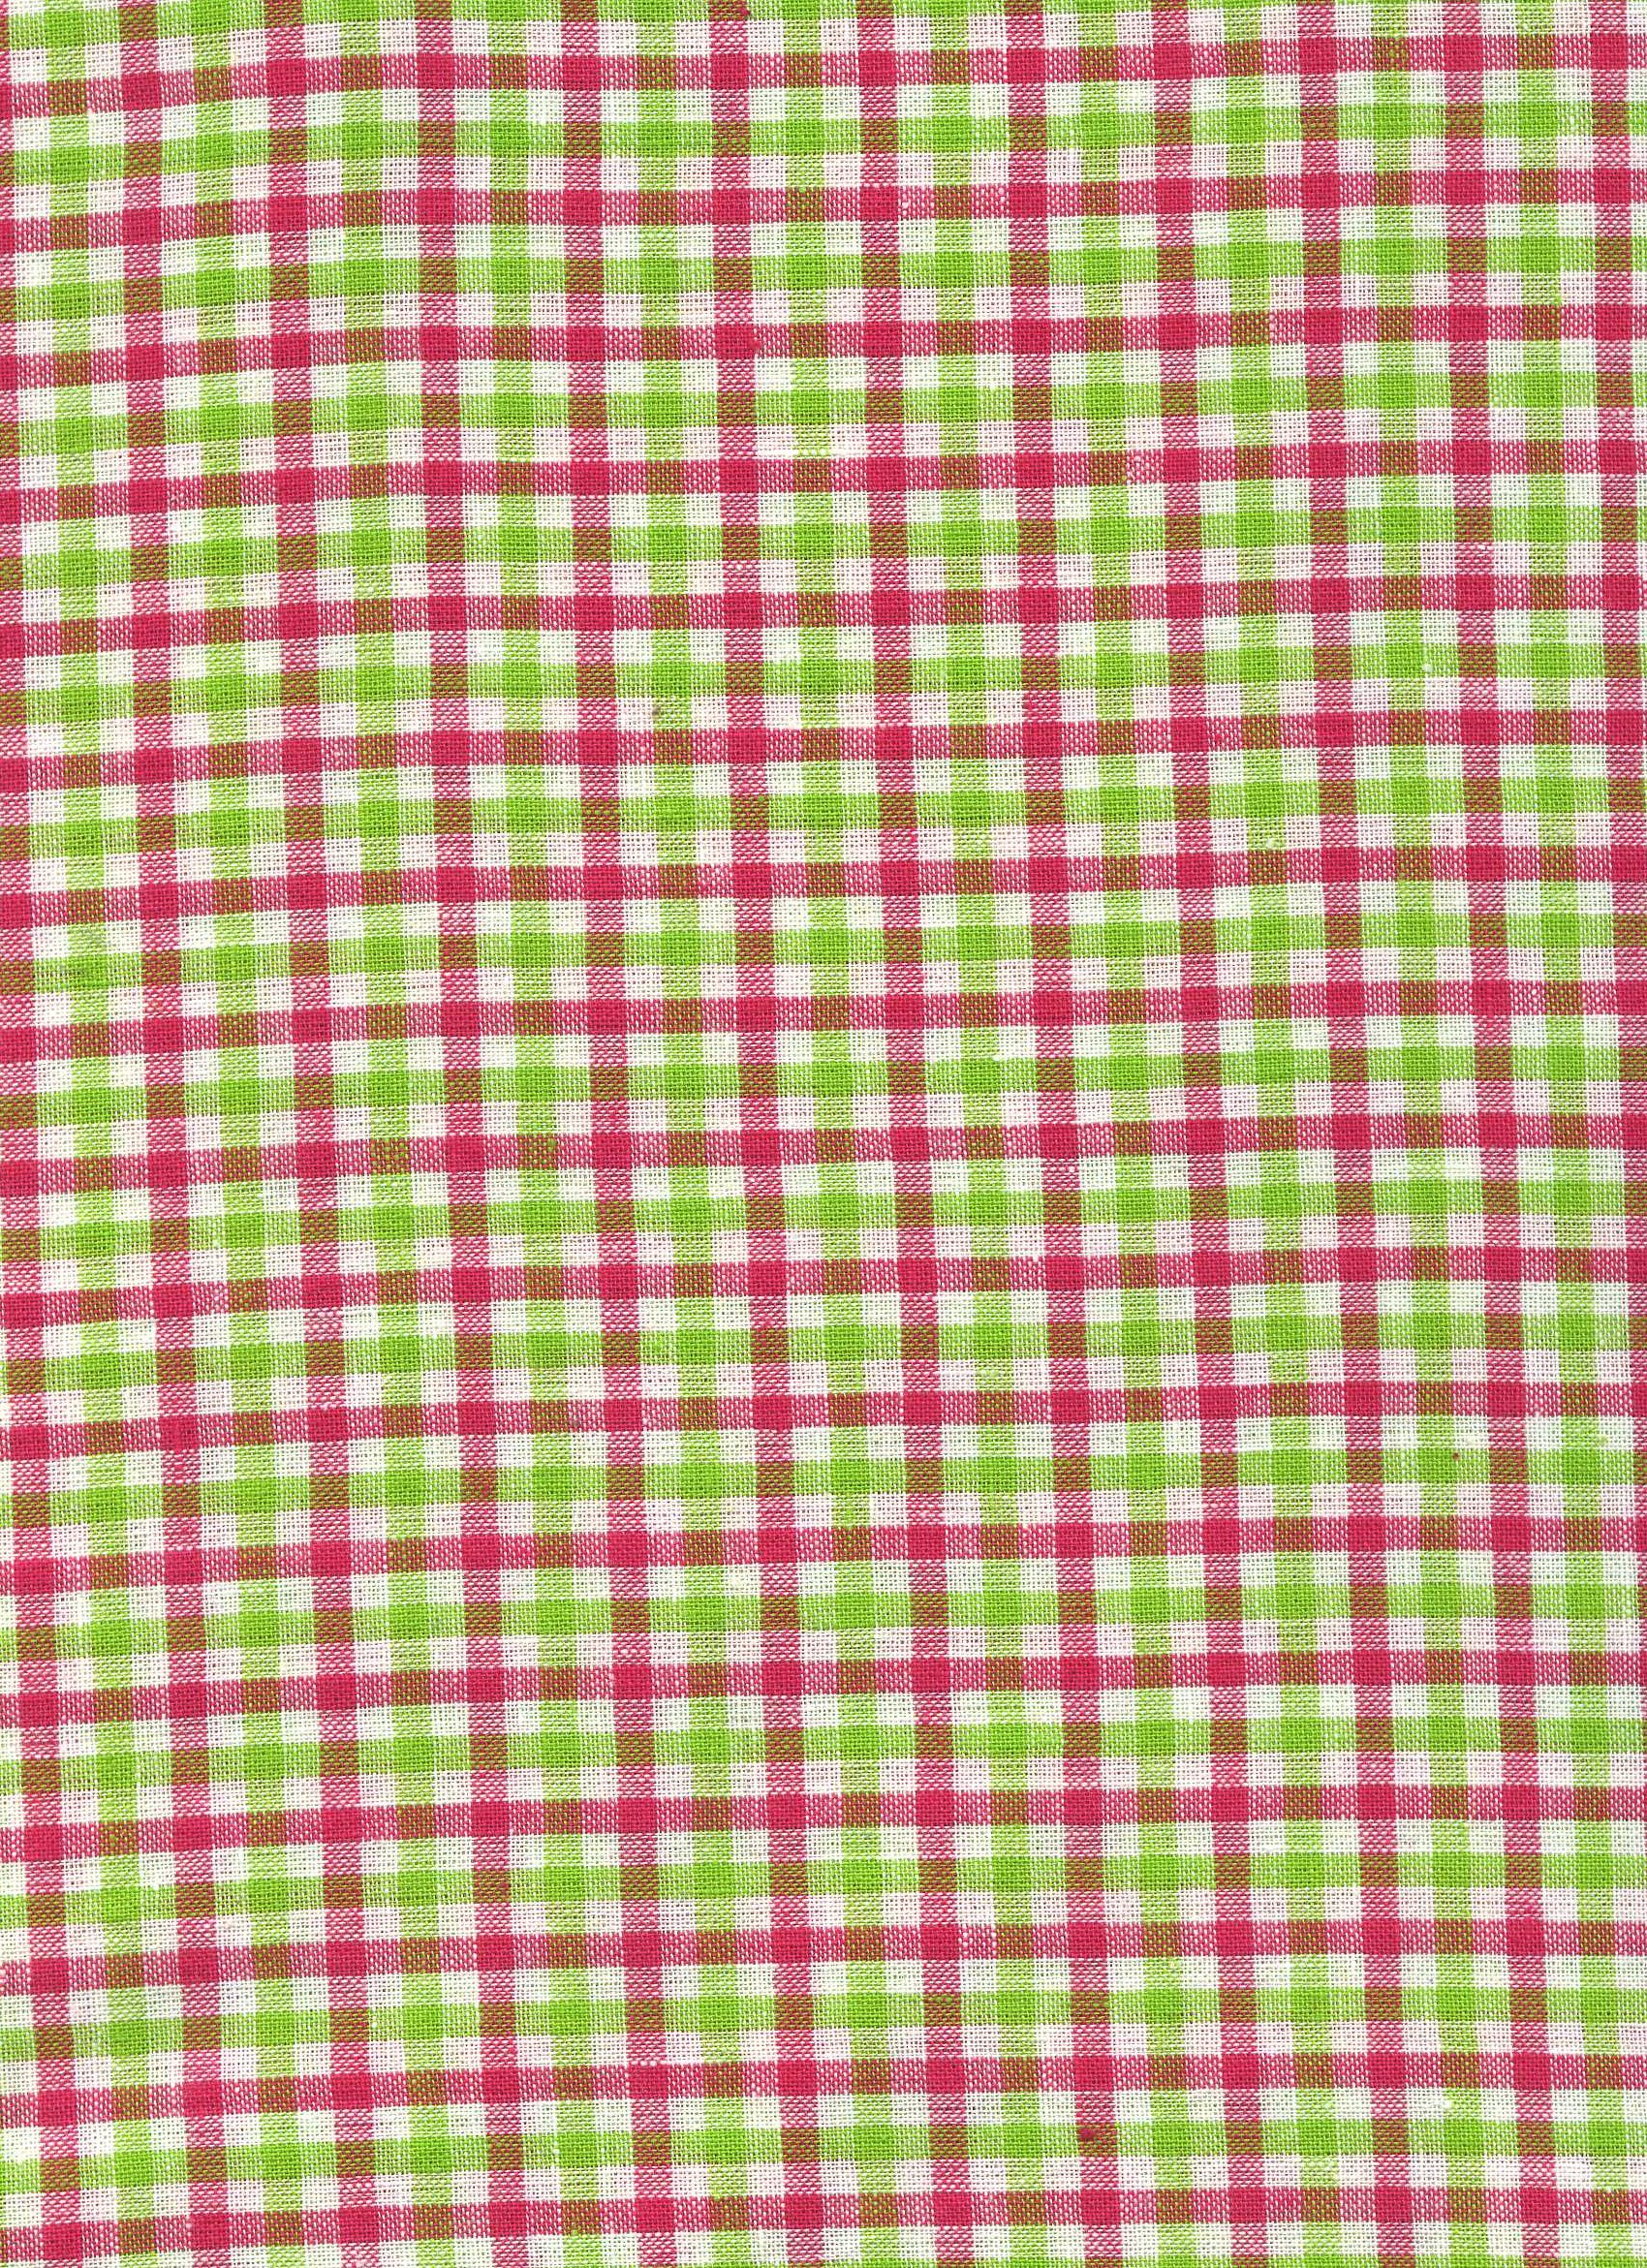 White/Green/Pink Plaid